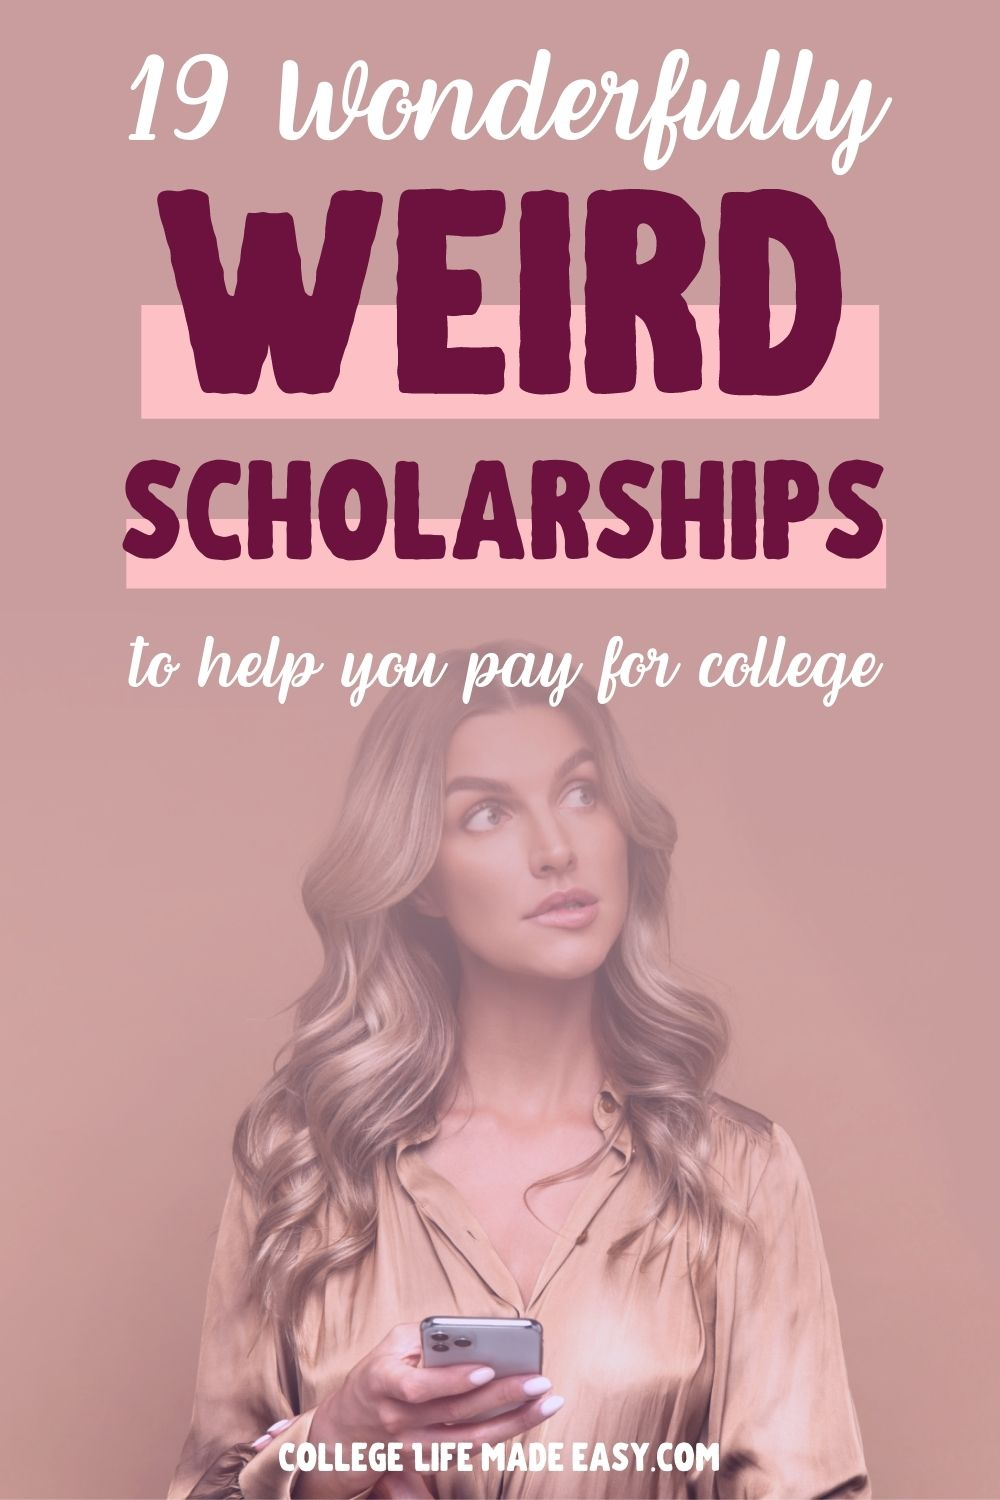 19+ Wonderfully Weird Scholarships for College 1